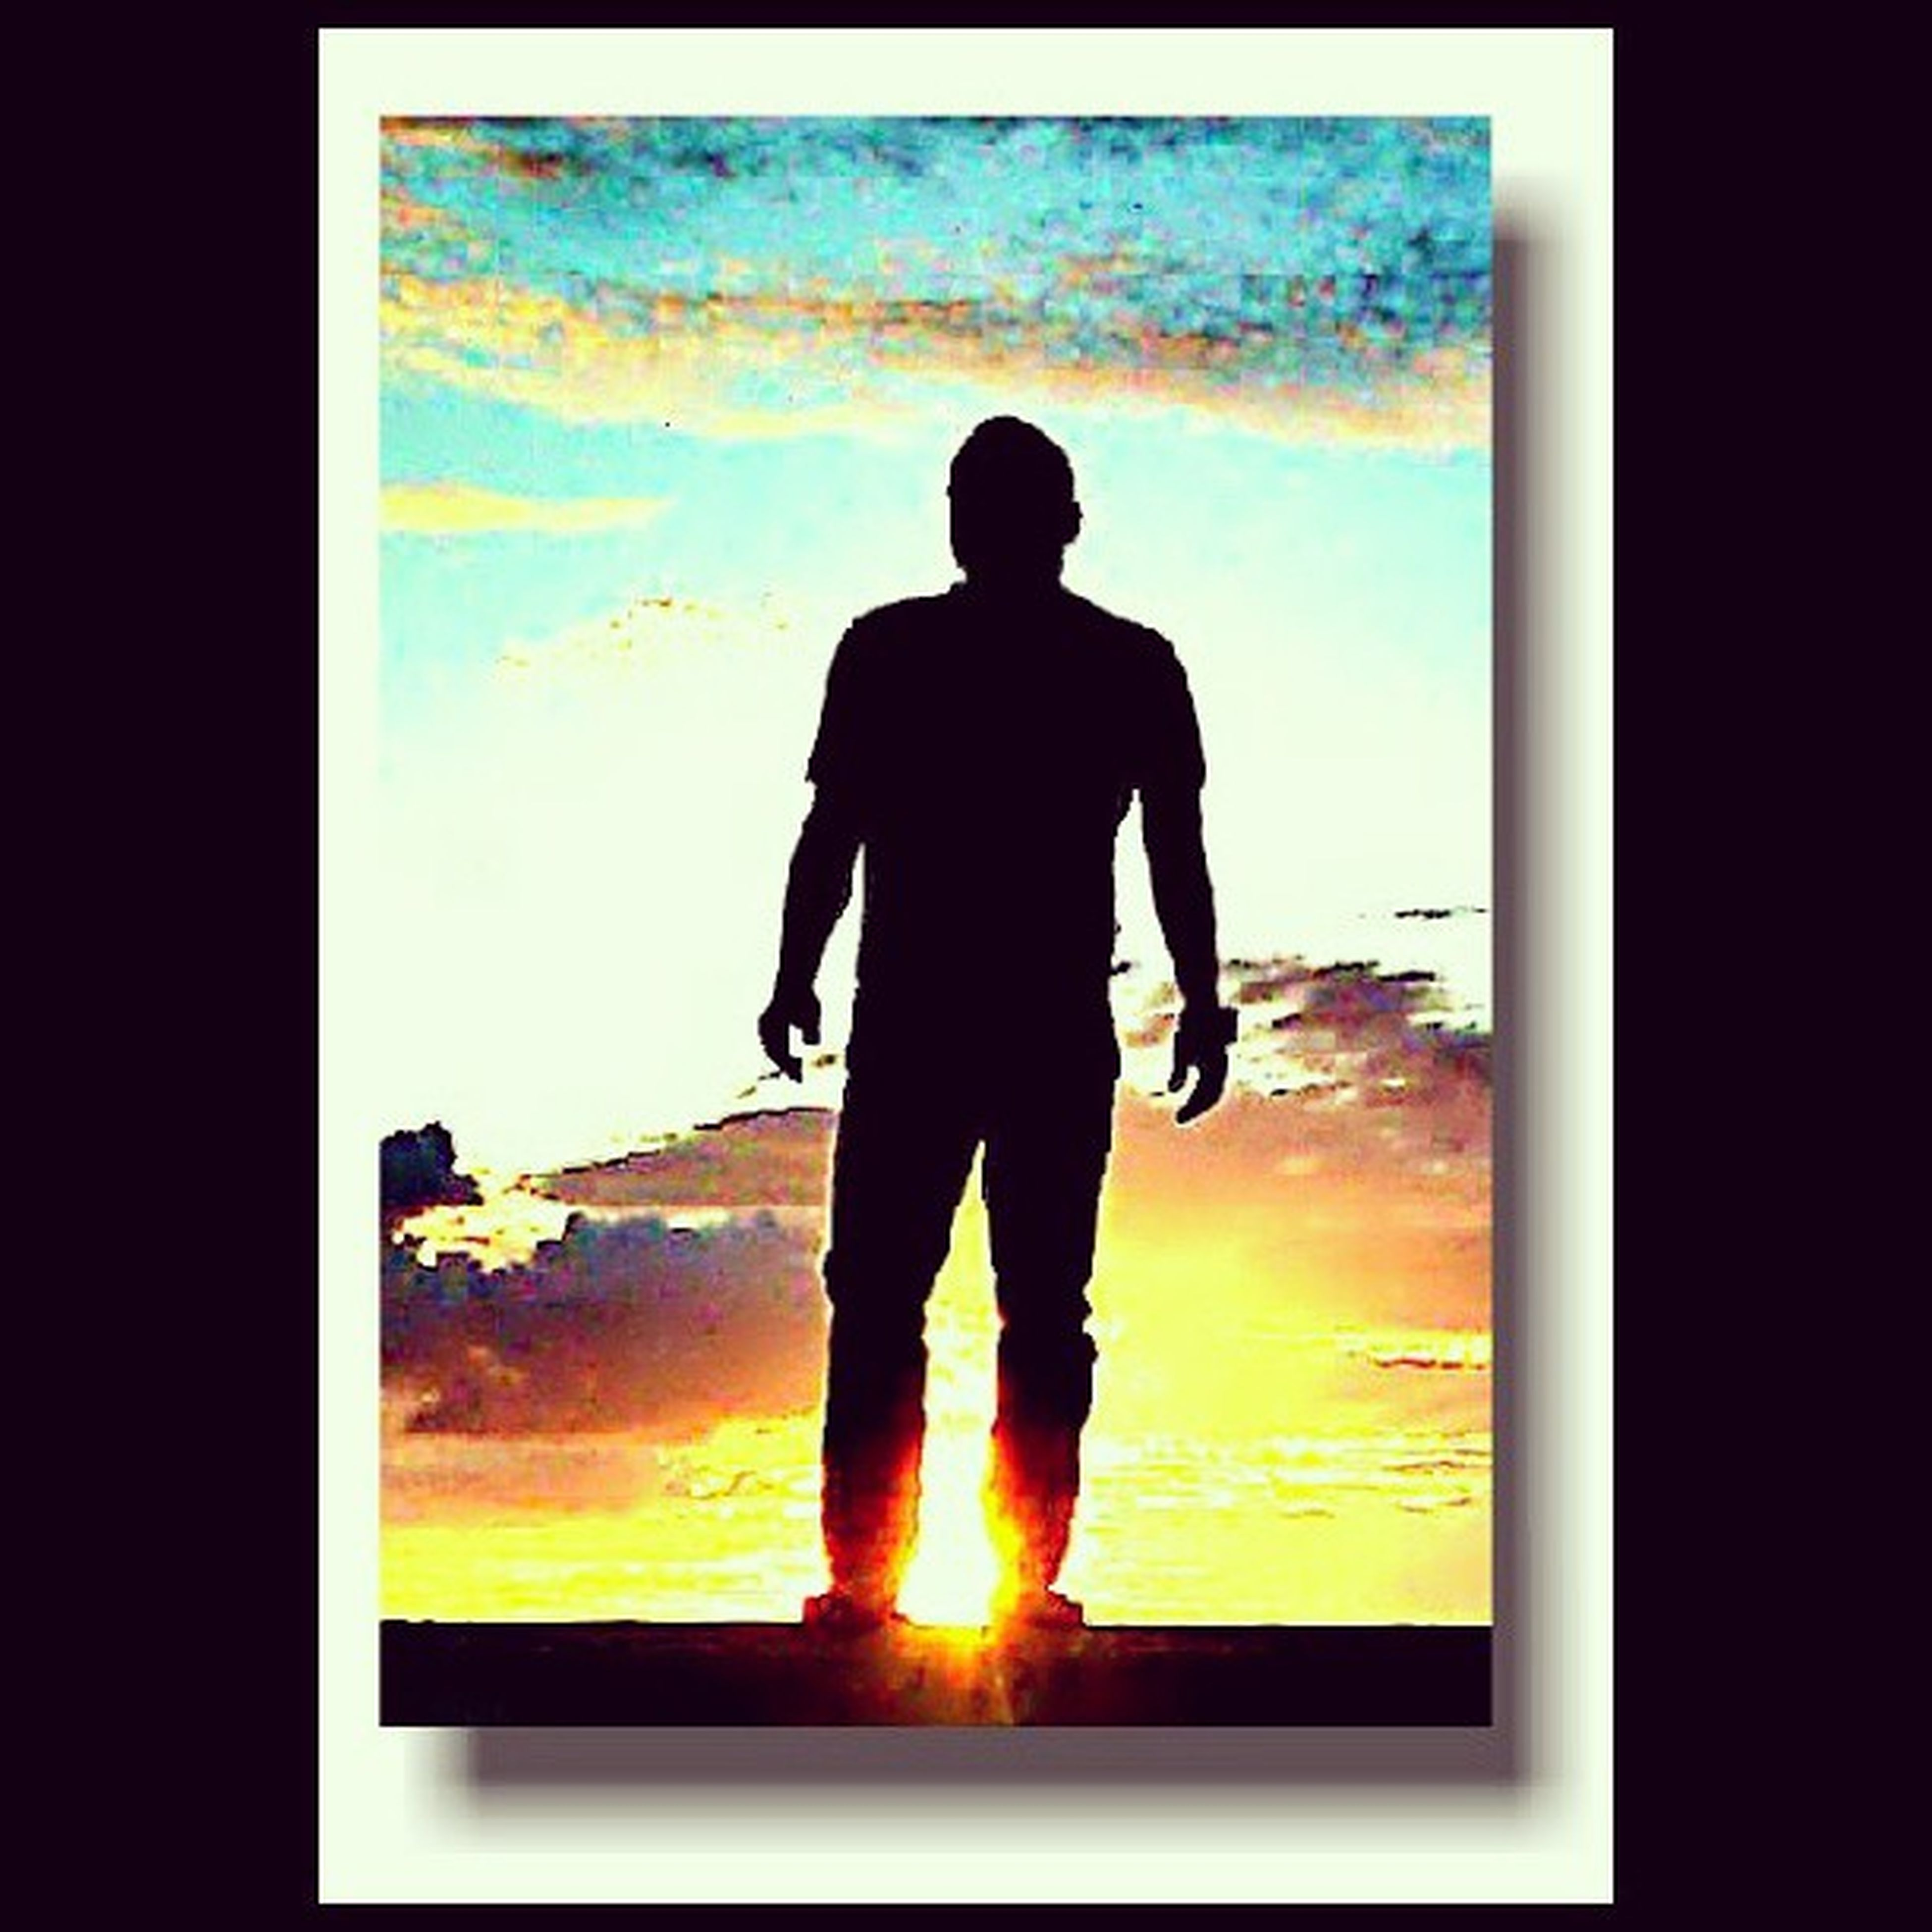 silhouette, sunset, standing, indoors, men, sea, rear view, orange color, full length, water, lifestyles, sky, sun, leisure activity, sunlight, horizon over water, person, nature